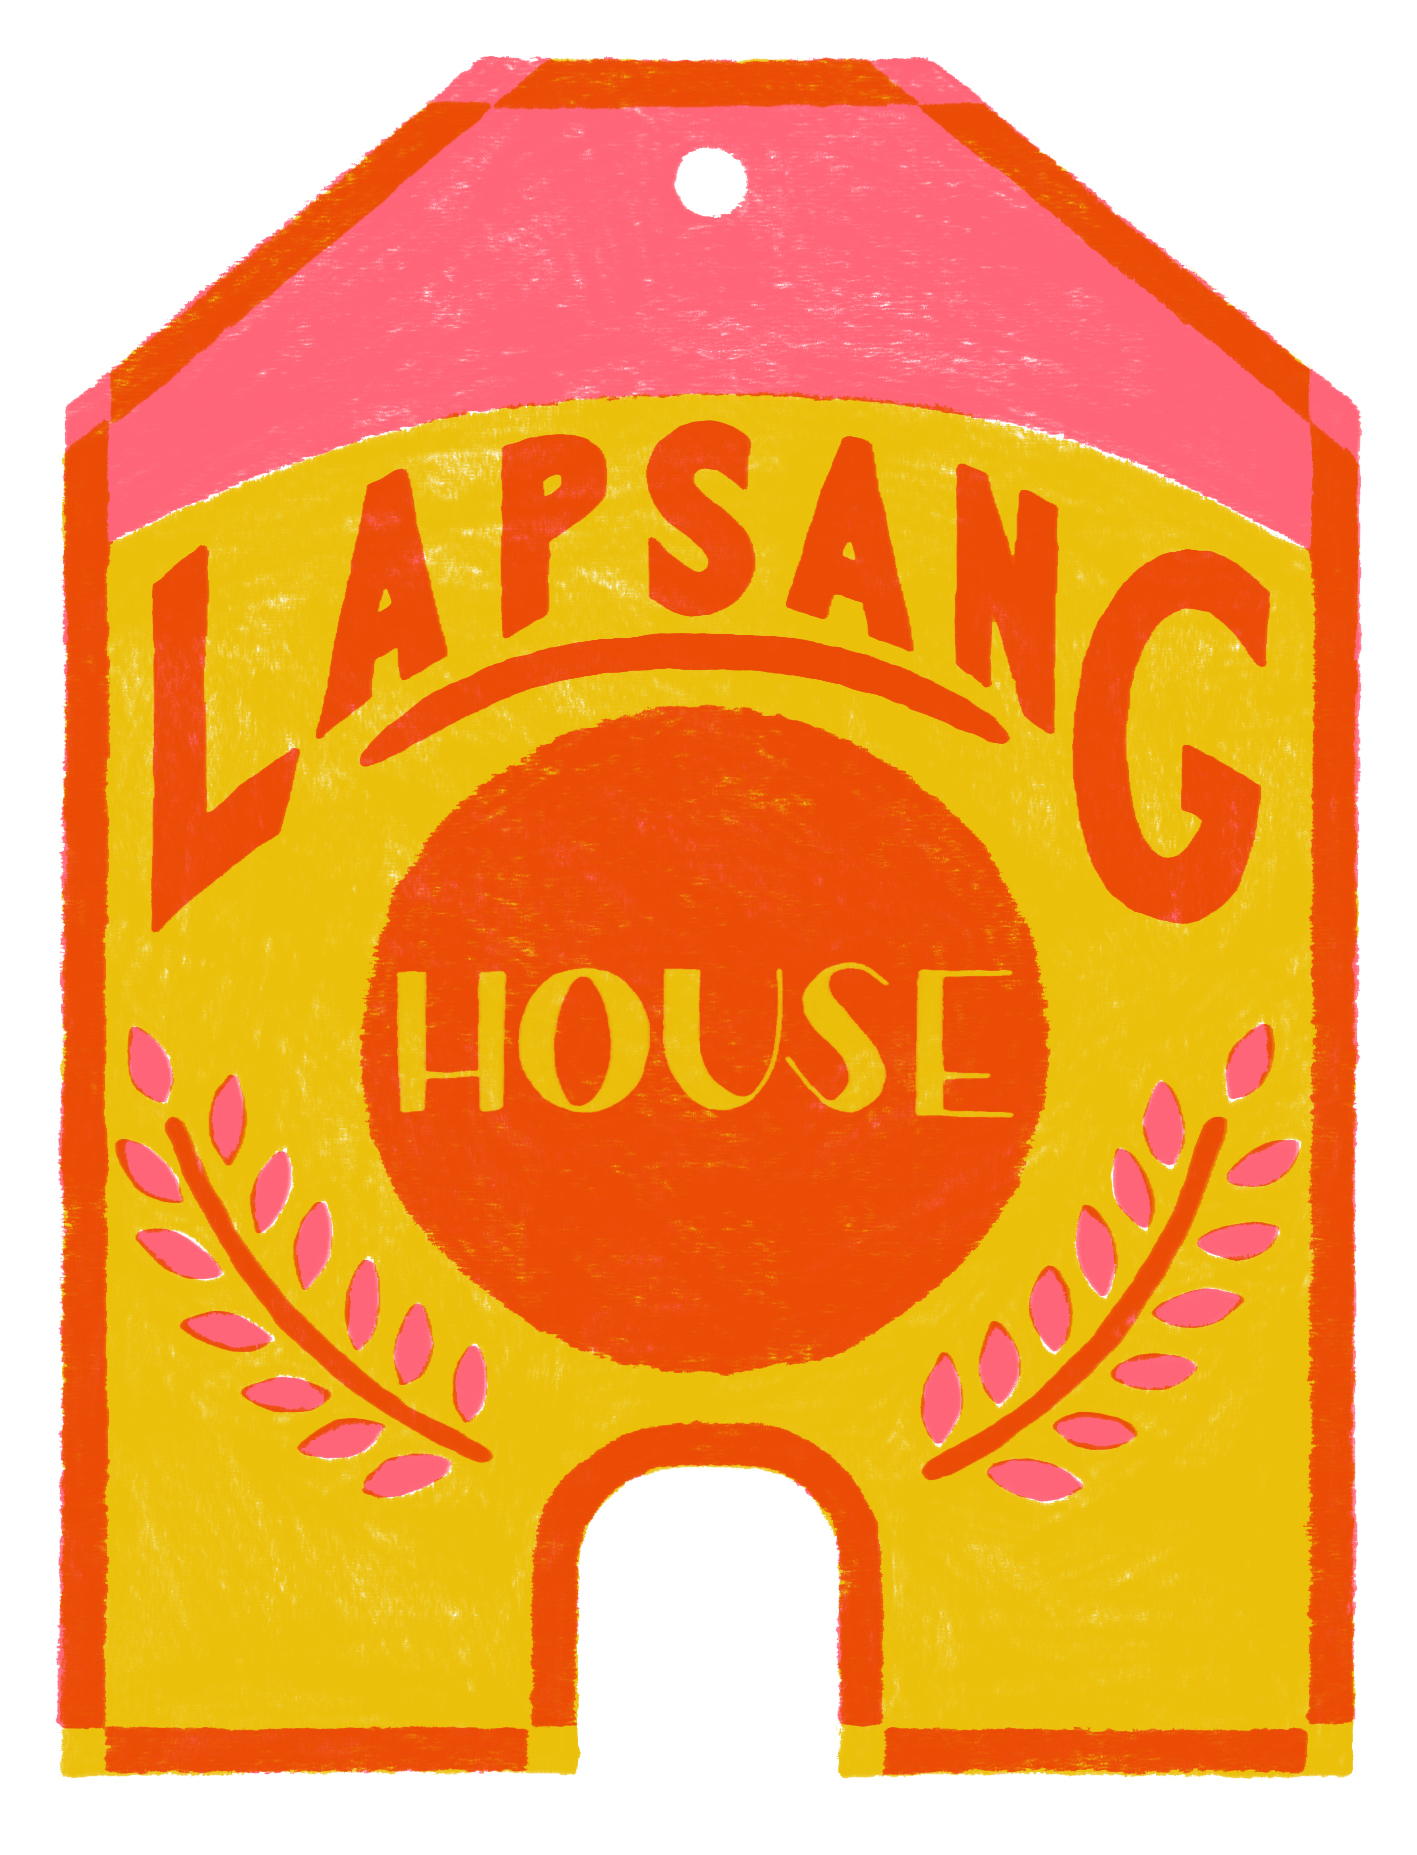 Lapsang House logo_yellow and pink.jpg